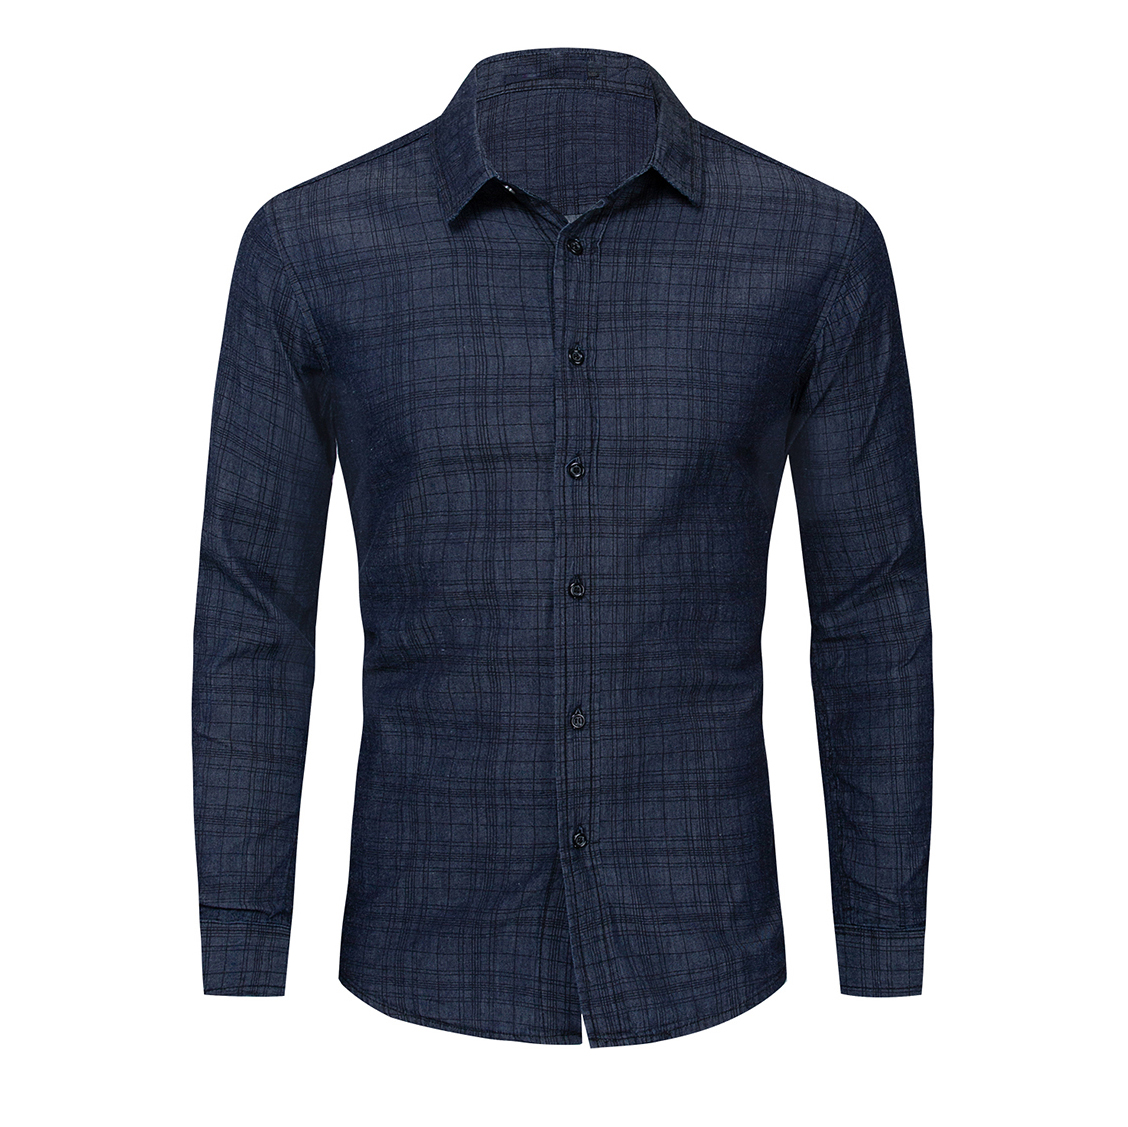 2020 New Fashion Men  Plaid Shirt 100% Cotton  Long Sleeve Casual Shirts Button Down Denim Male Clothing